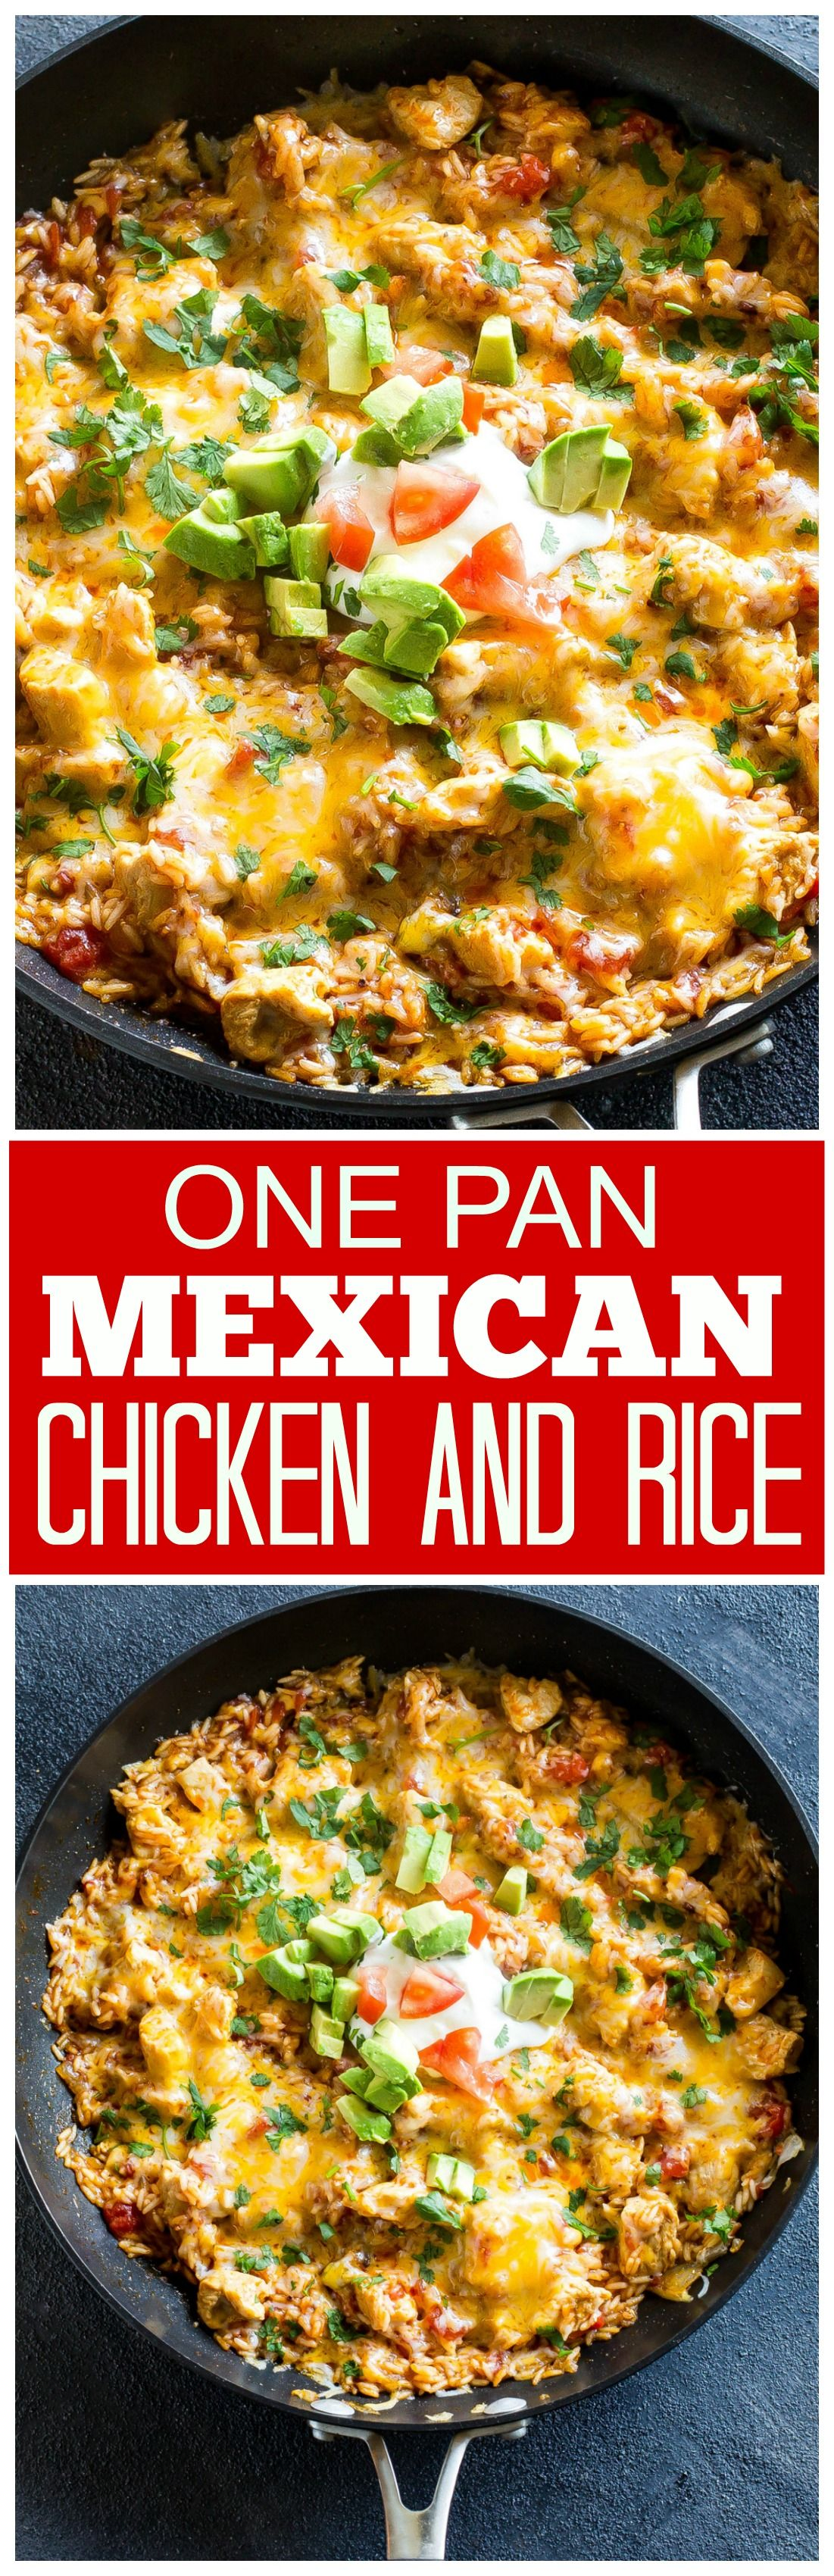 One Pan Mexican Chicken And Rice An Easy Dinner Ready In Under 30 Minutes The Girl Who Ate Everything Mexican Chicken And Rice Mexican Food Recipes Recipes